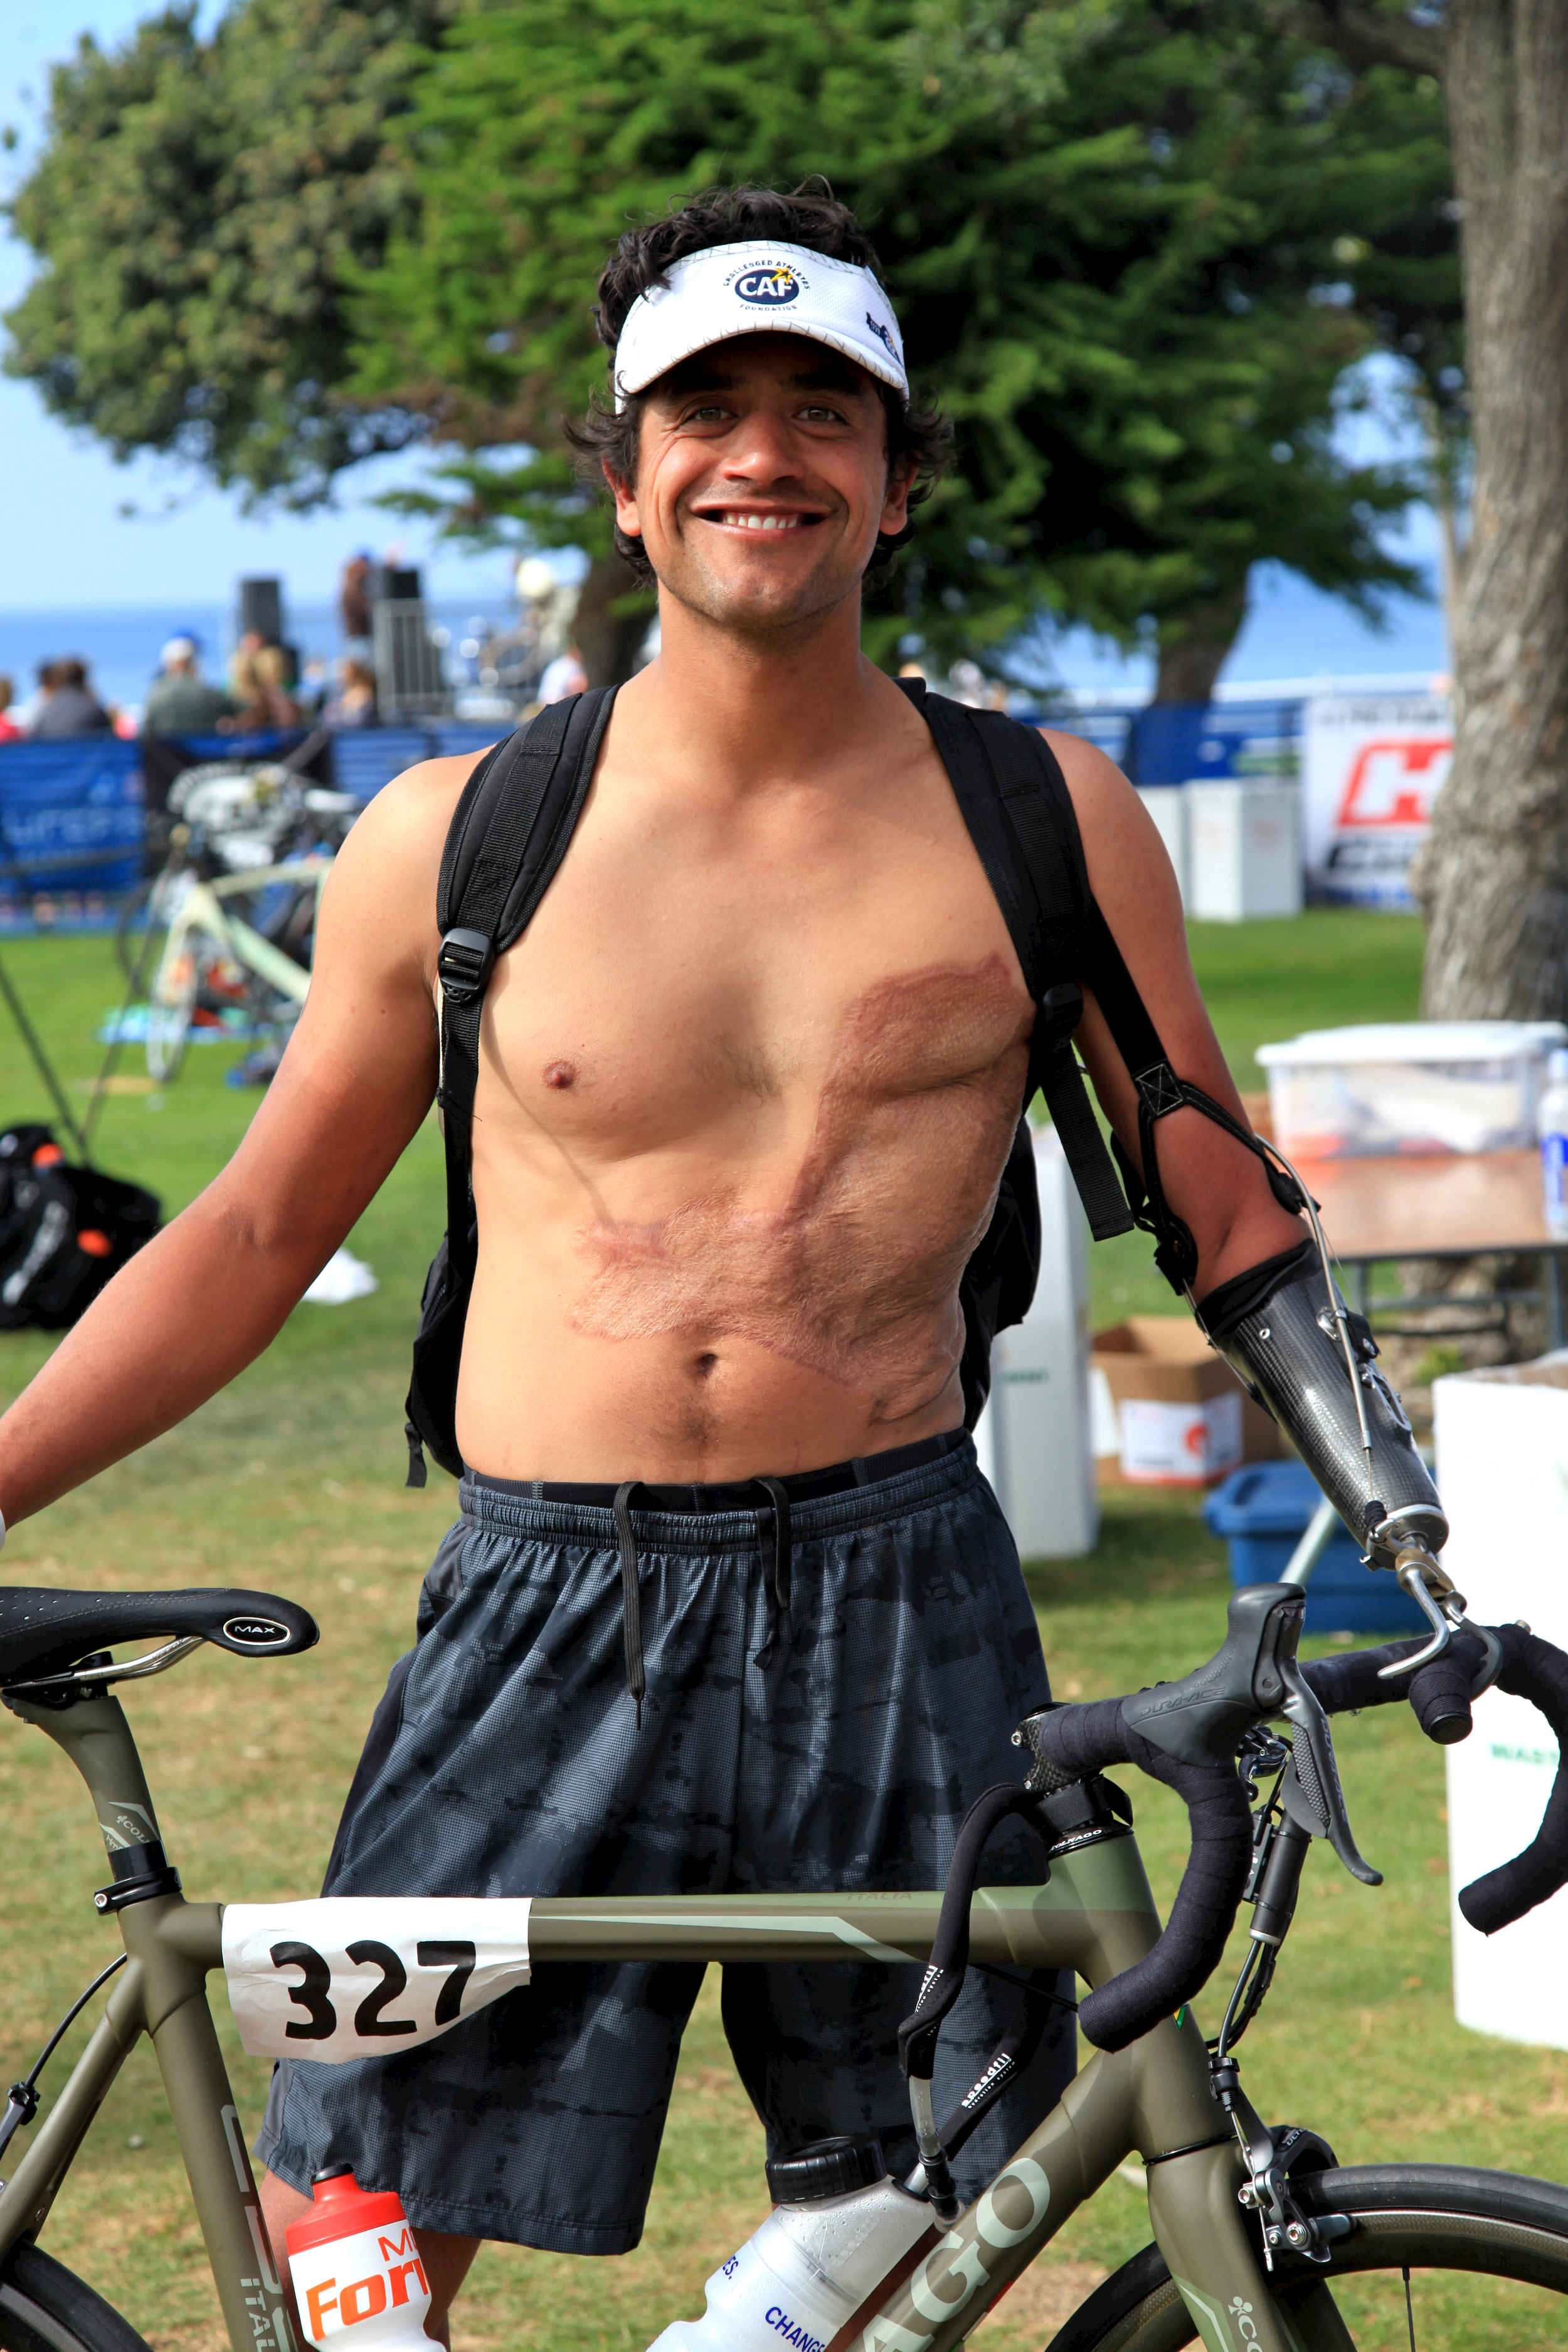 A happy Eduardo after representing the Challenged Athletes Foundation in his first triathlon event!